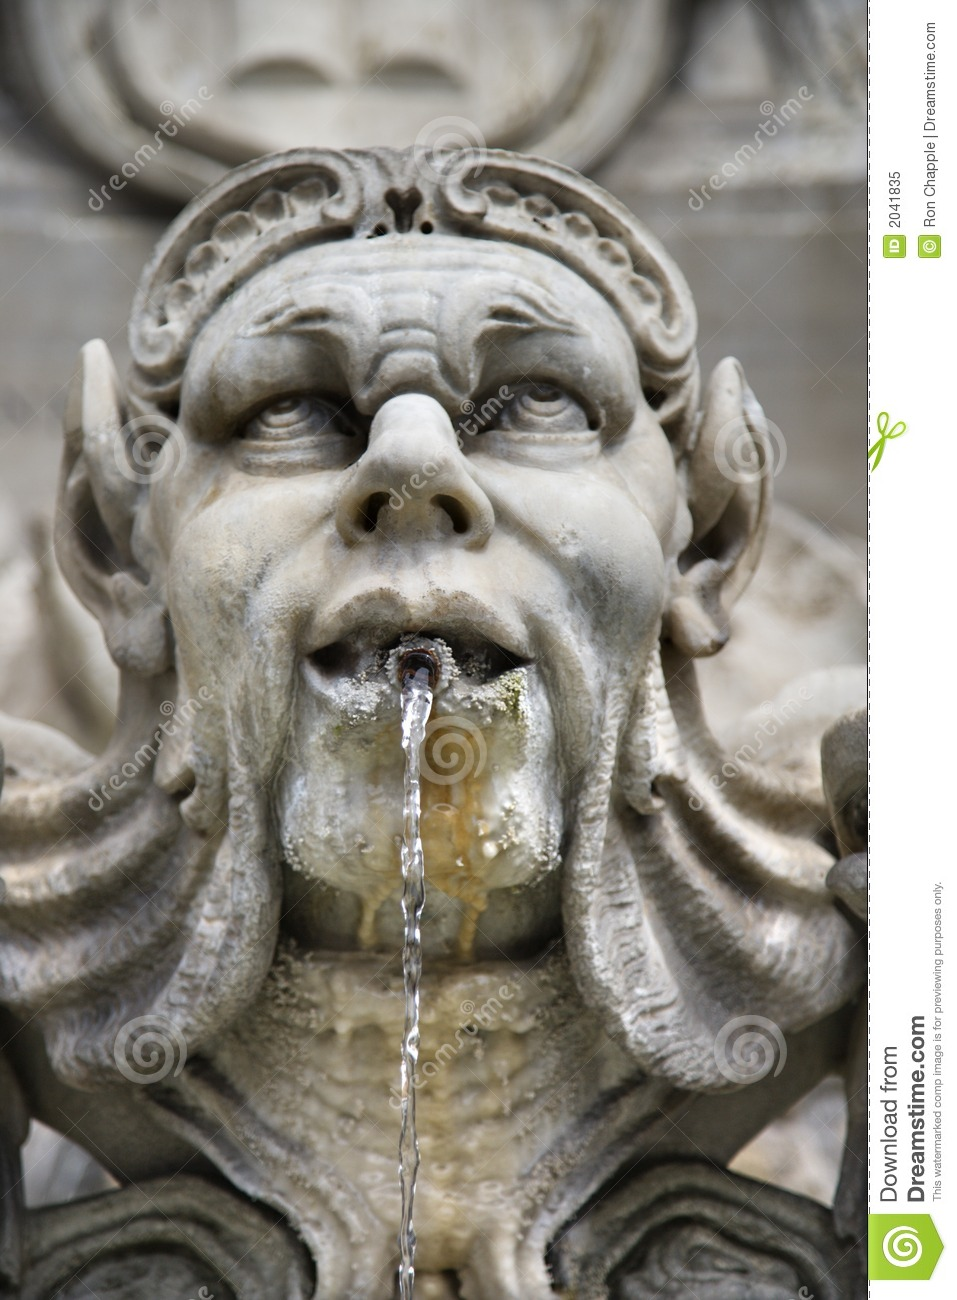 Water fountains with statues - Statue Fountain In Rome Italy